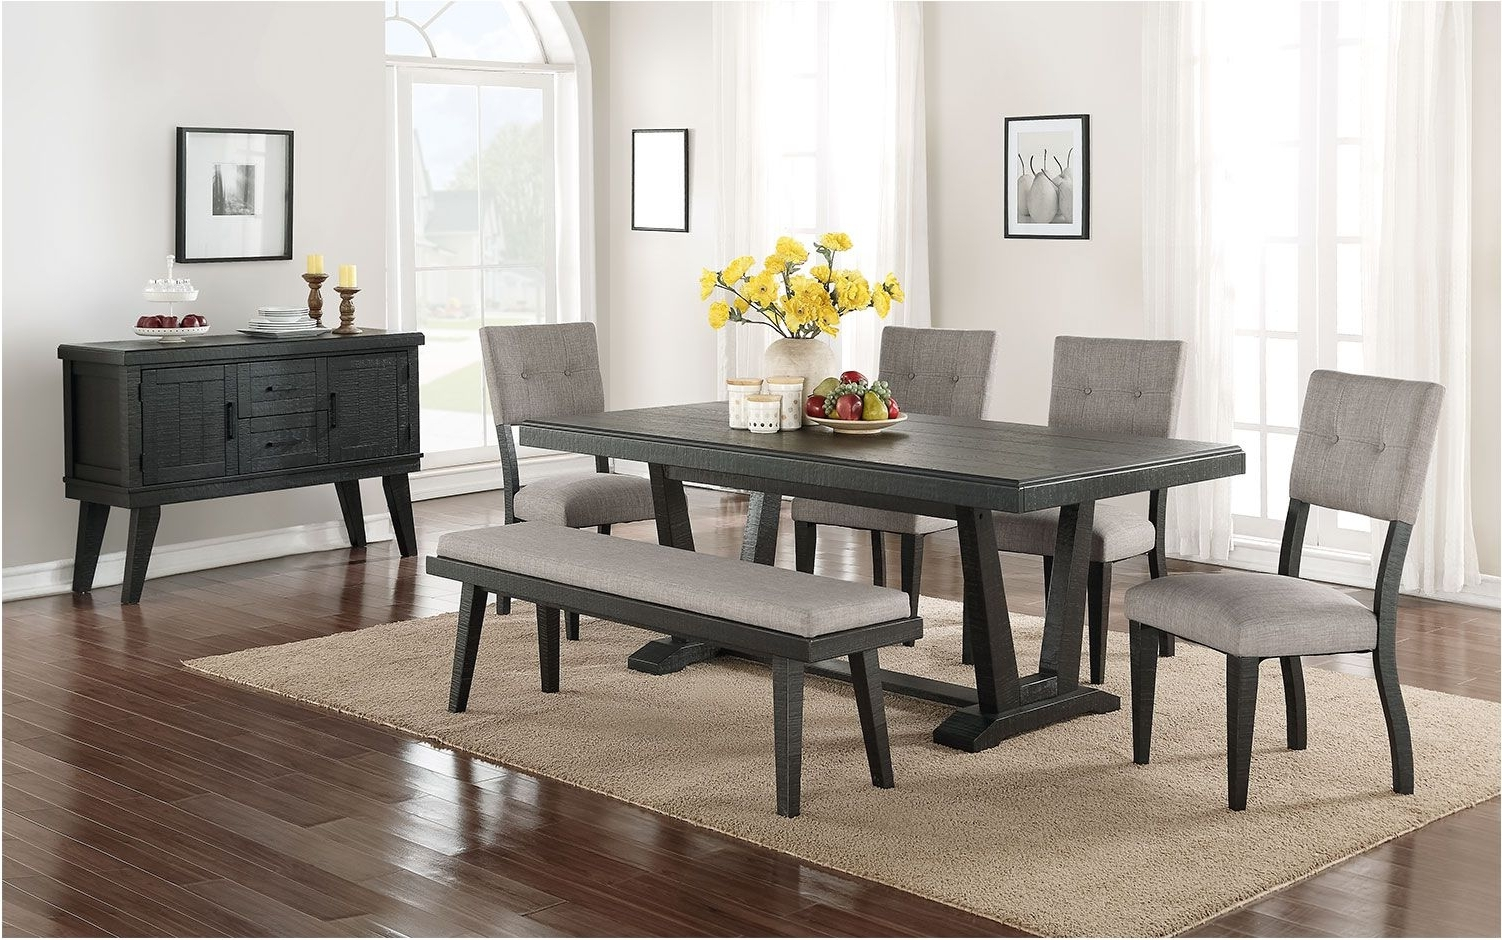 Latest Stunning 6 Piece Dining Room Set Black And Grey Leon – Dining Room With Leon 7 Piece Dining Sets (View 4 of 25)